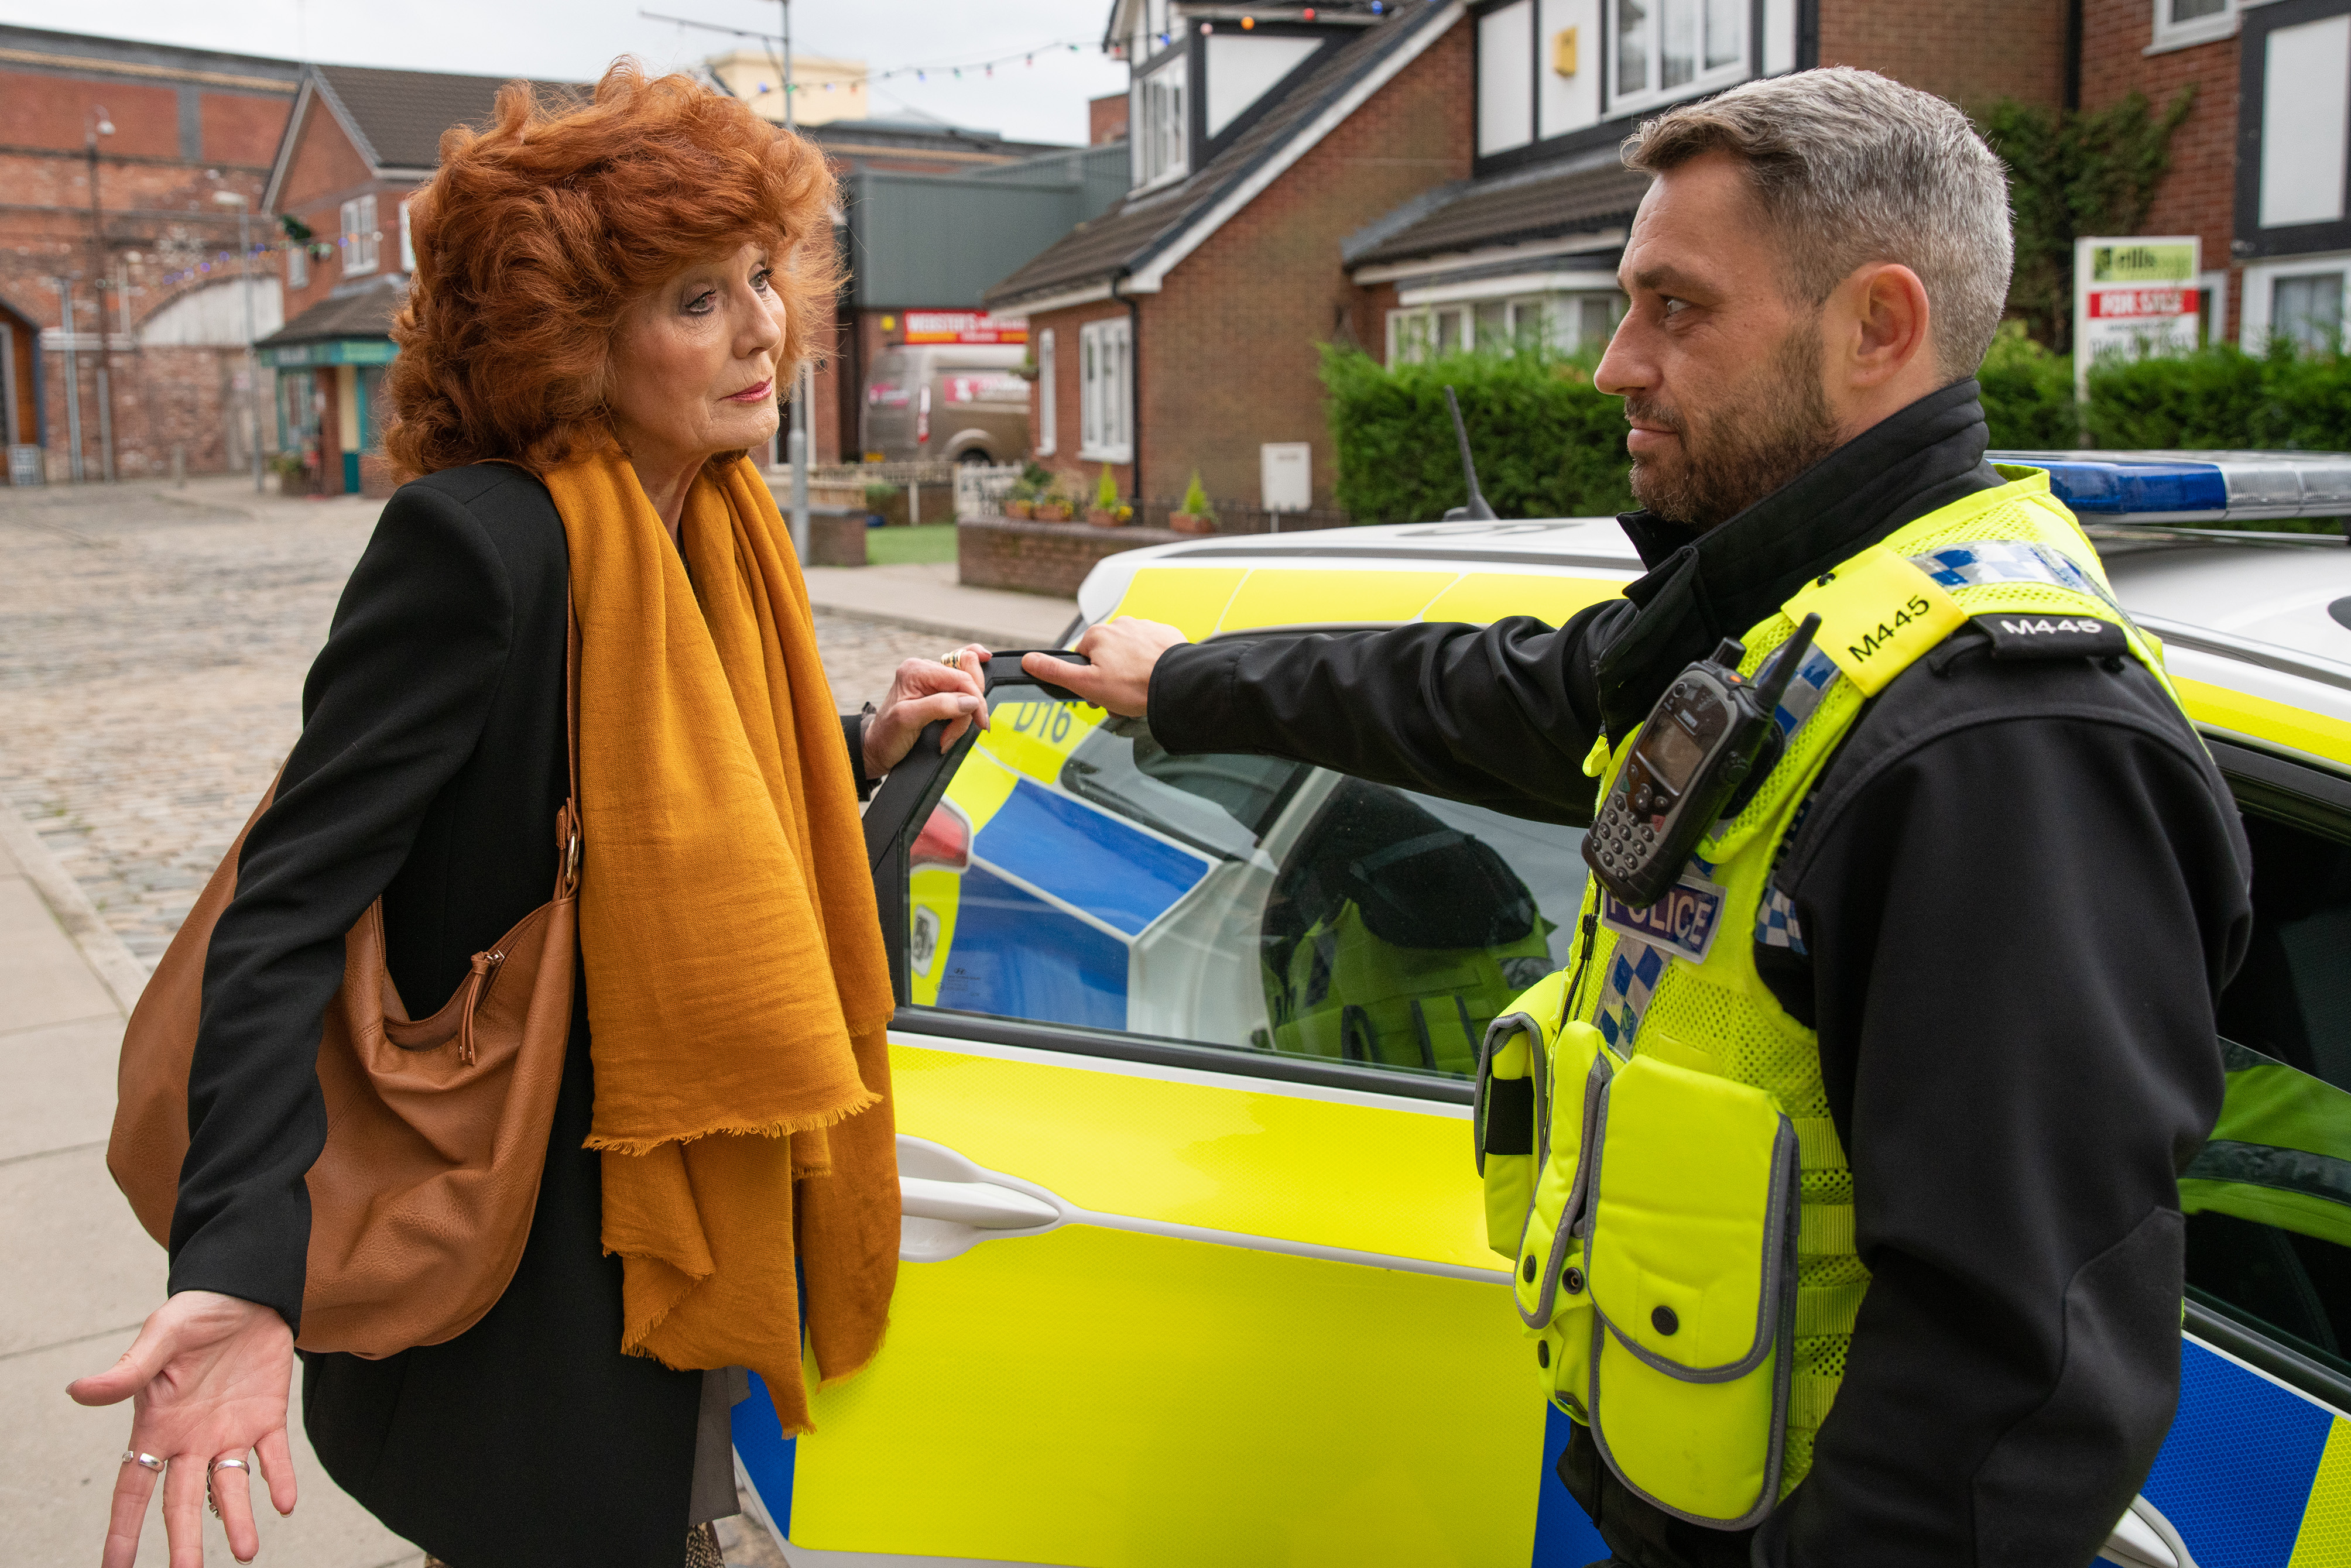 Coronation Street spoilers: Police close in on Claudia Colby for money theft but will the real culprit be revealed?